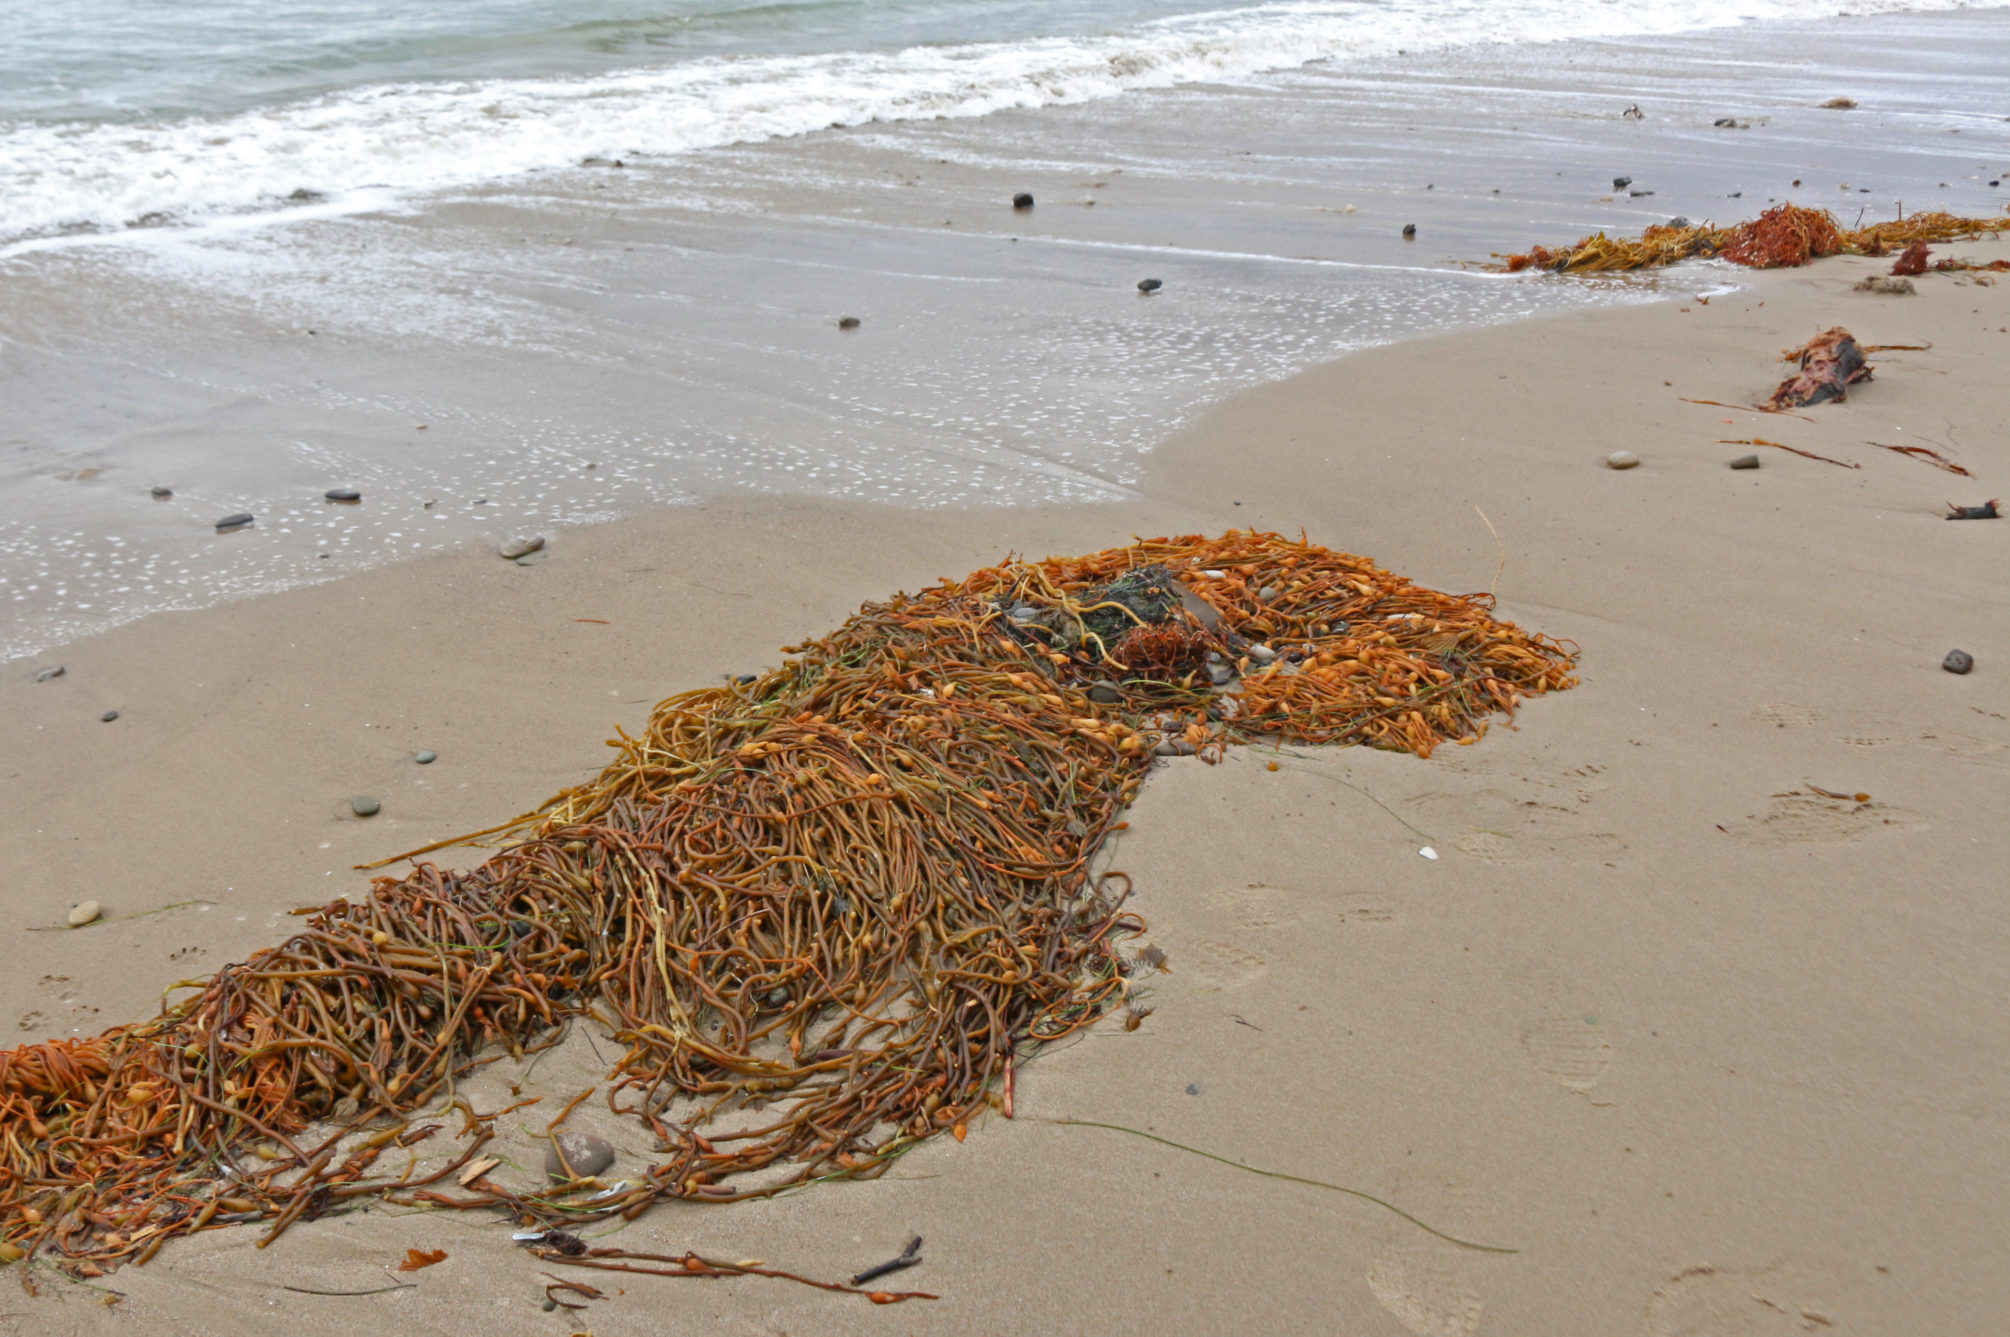 Beach wrack (kelp and other ocean debris washed ashore) is prime habitat for beach hoppers and many other tiny nearshore animals.